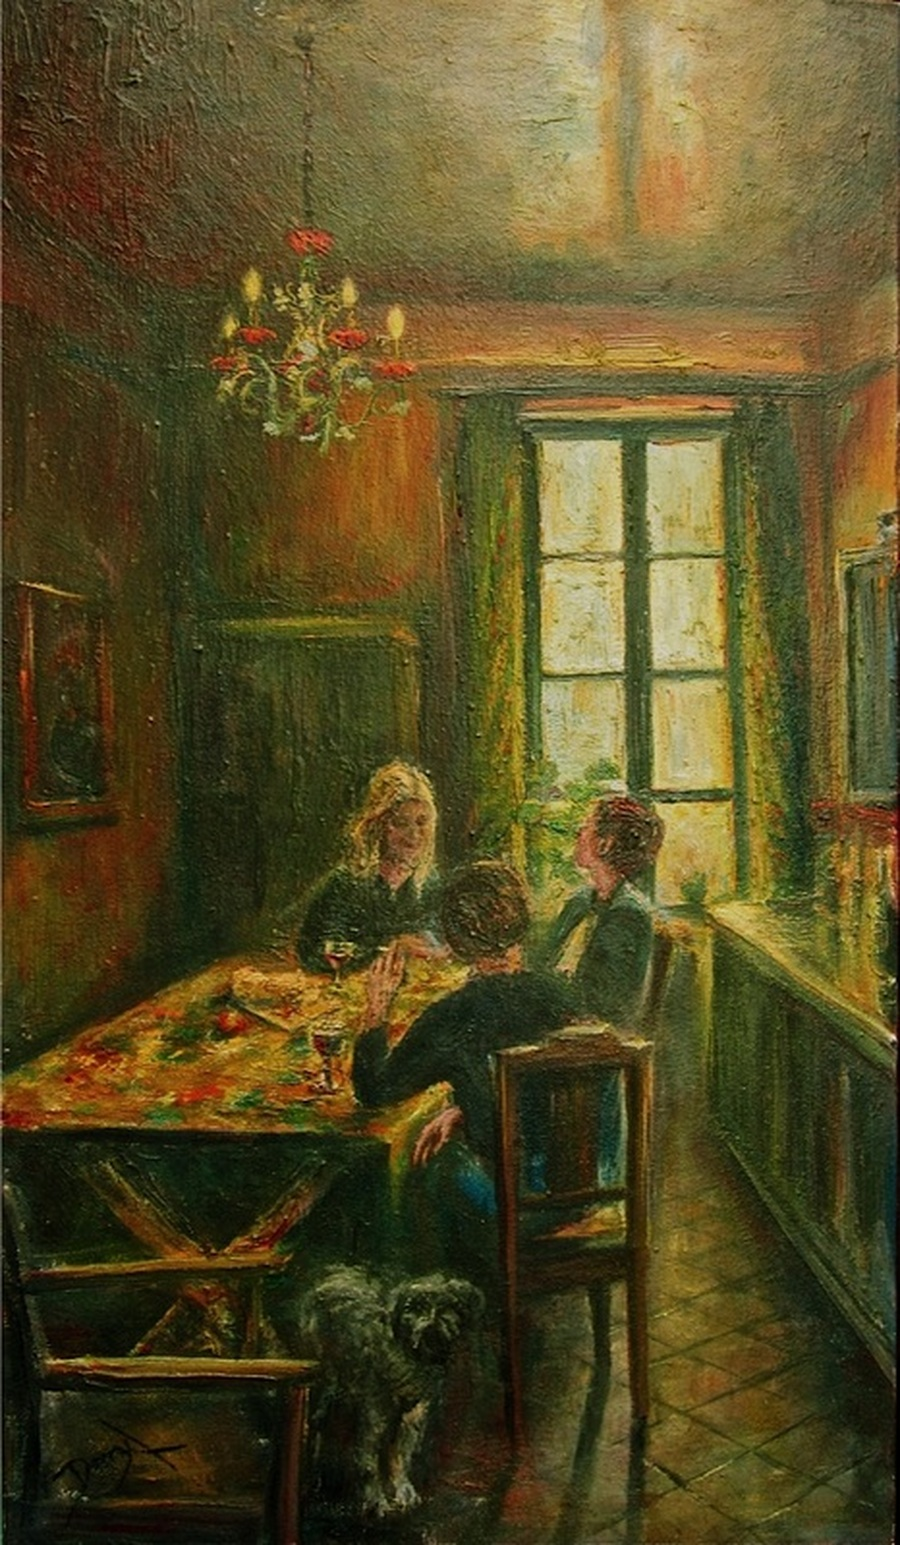 French Provencal kitchen painting : 'Amanda's Kitchen' Oils on canvas. An interior of 18th century kitchen. The walls are a dark red with green bench and food larder. It is a small room, enough for food preparation and aspace for a country style table with provencal style table cloth. Sitting around the table are three young women in conversation sharing wine and bread. There is a small dog watching the artist (myself as I made some quick sketches). There is a soft light through the window giving a golden glow to the painting. An ornate old chandelier hangs from the ceiling.